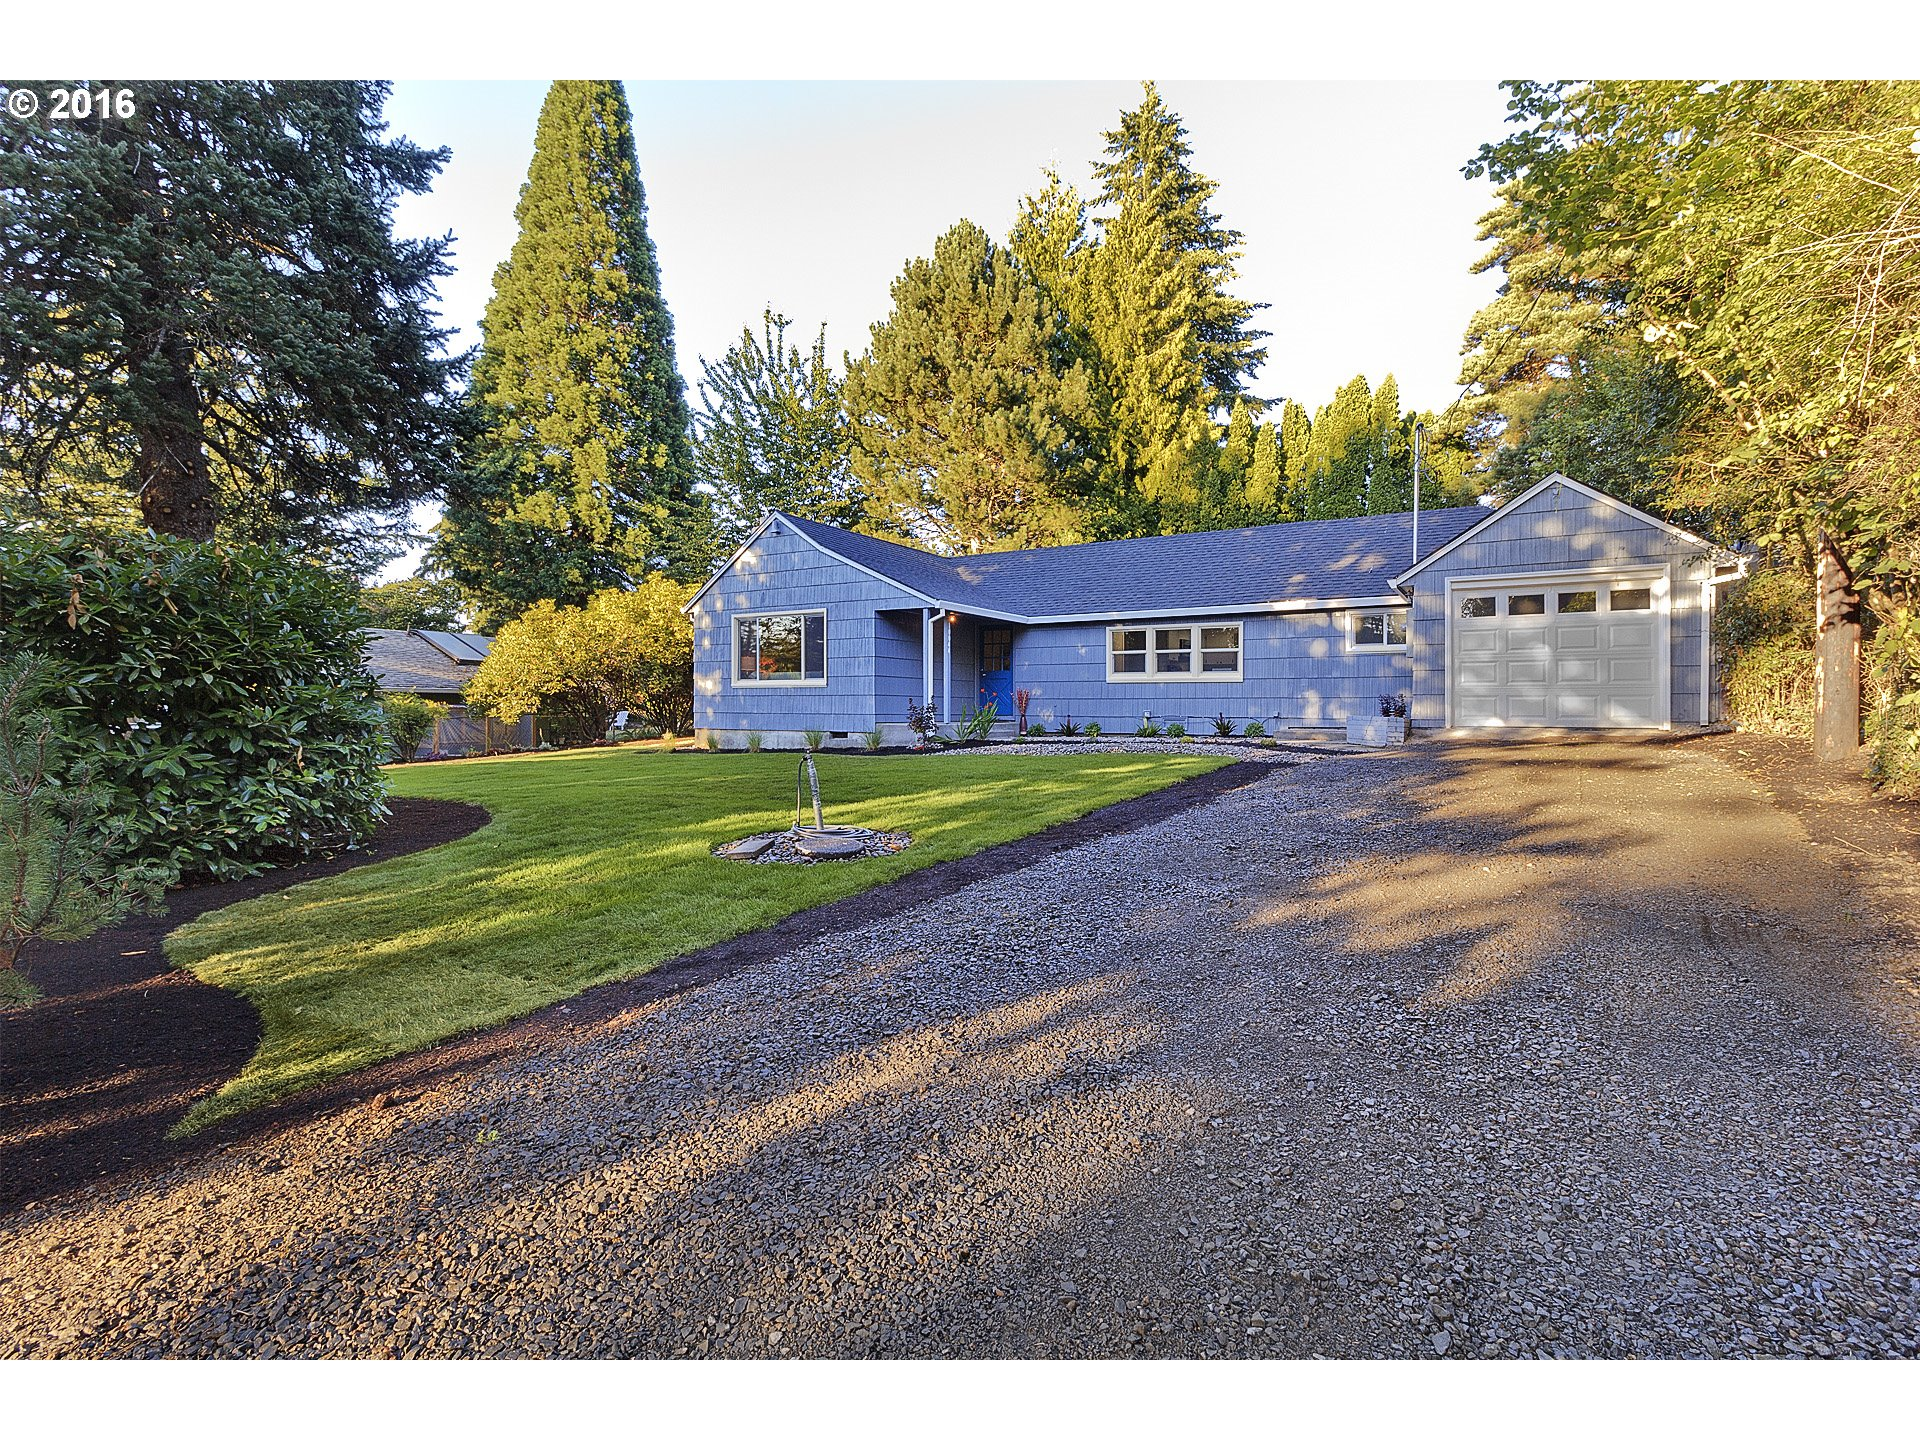 $350,000 - 2Br/2Ba -  for Sale in Lair Hill / Markham, Portland